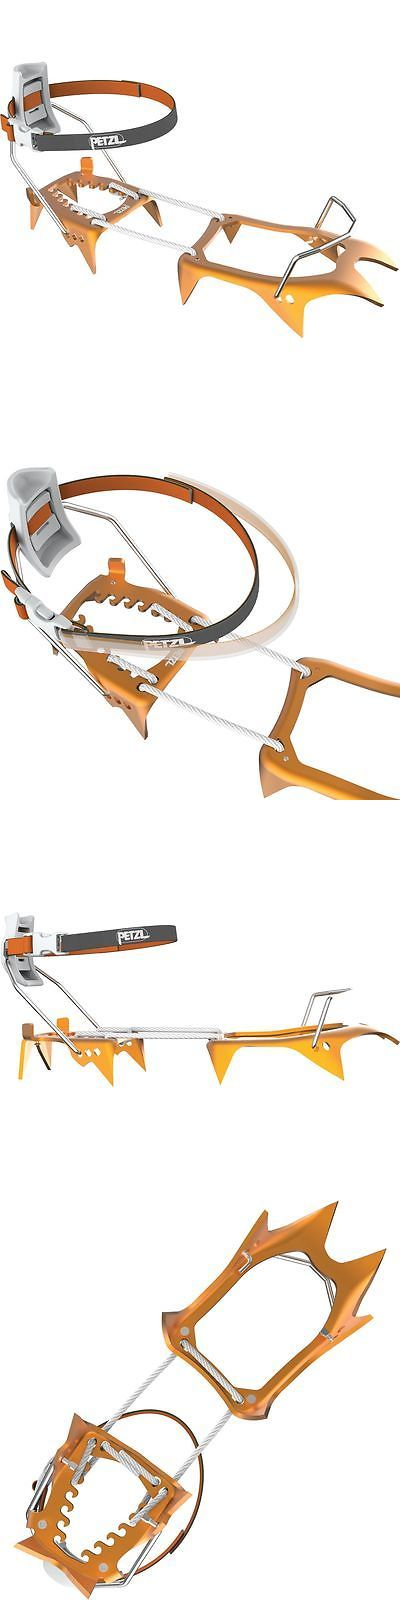 Ice Climbing Equipment 158981: Petzl Leopard Llf Crampon One Color One Size -> BUY IT NOW ONLY: $169.95 on eBay!